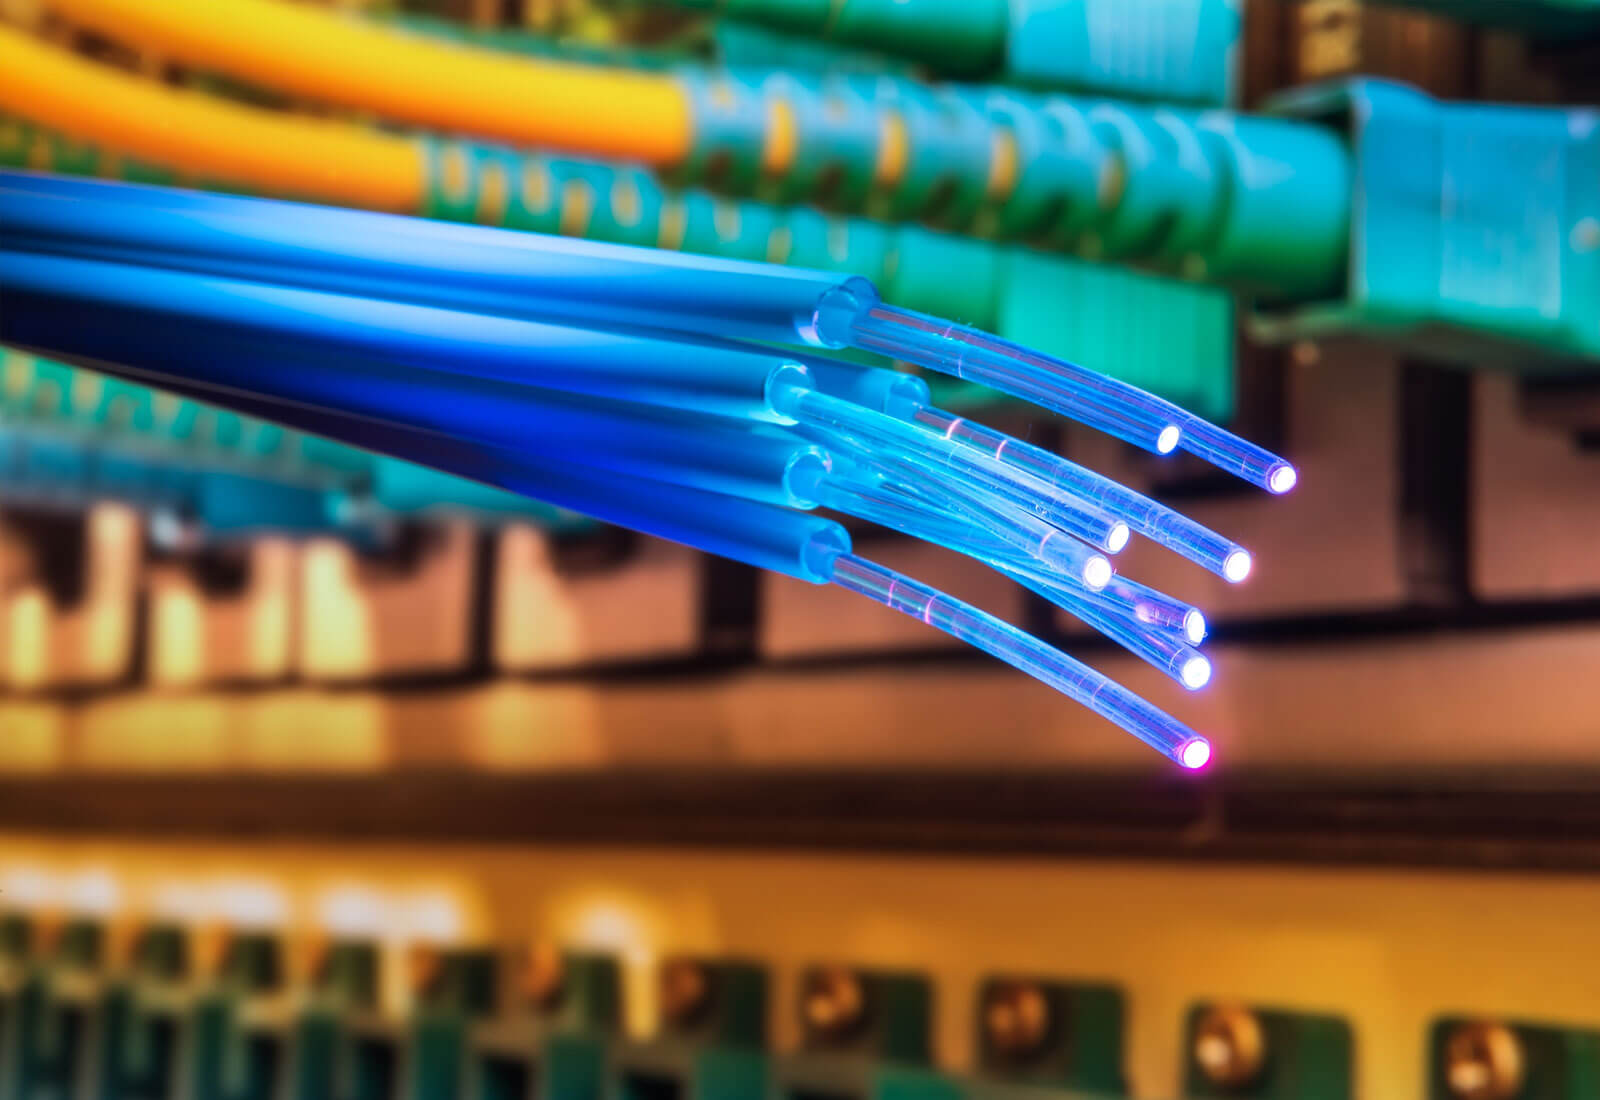 Second HyalRoute Fiber Optic Cable Network Project | Multilateral